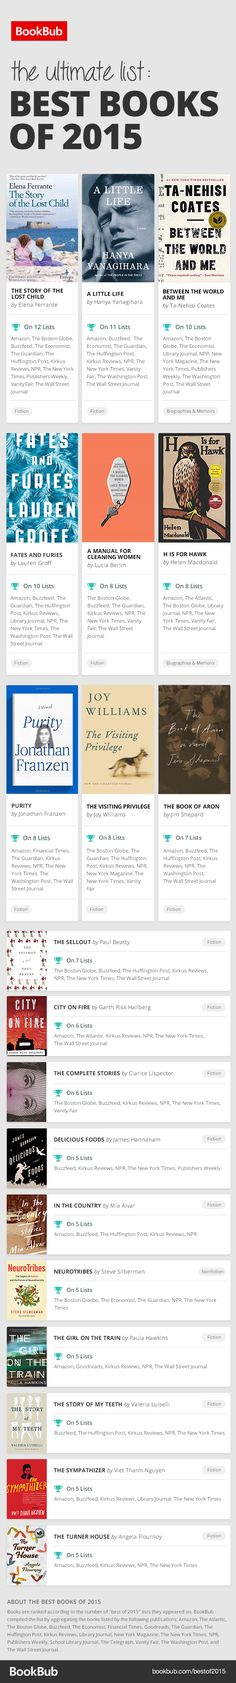 """What are the best books of 2015? We collected data from 20 """"best of"""" lists to find the ultimate list of books worth reading this year!"""